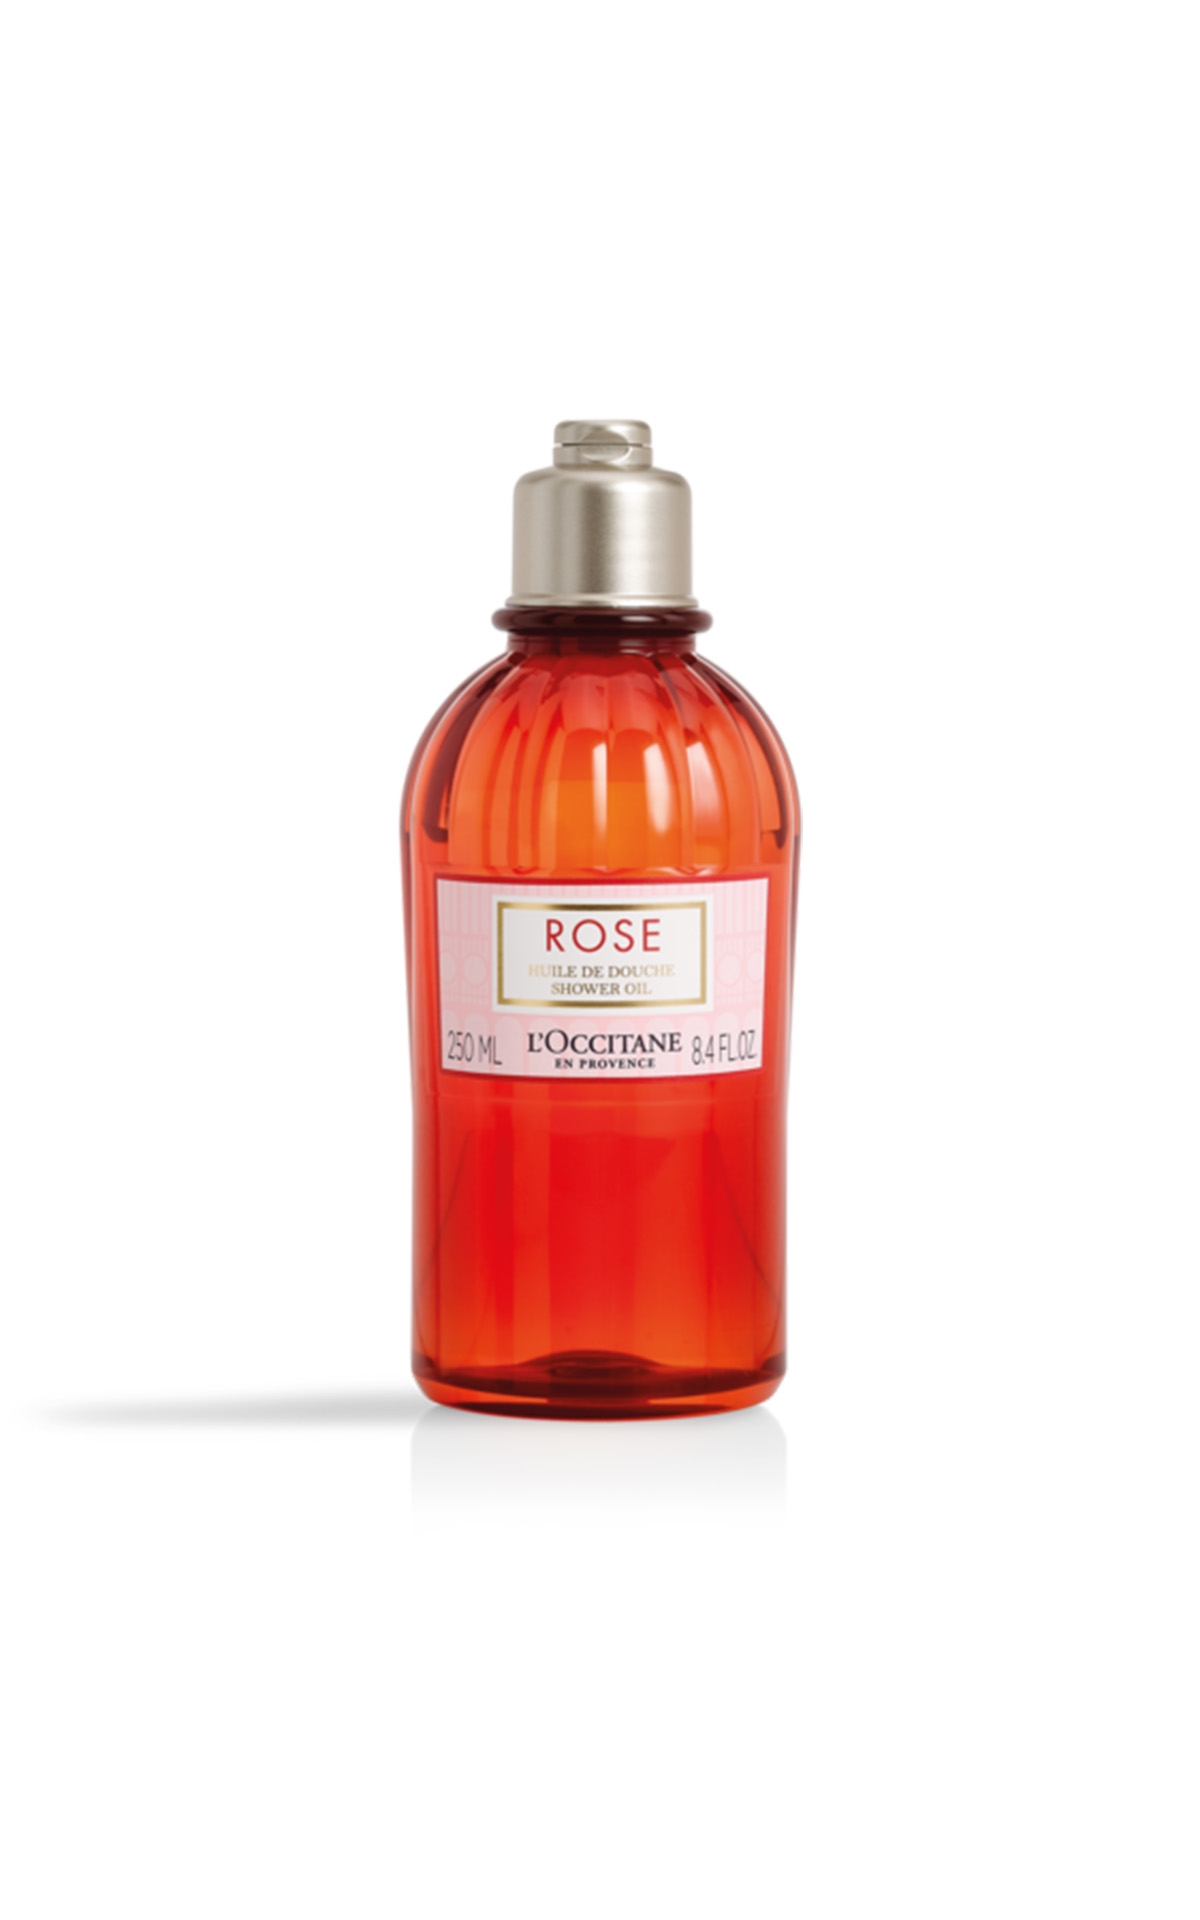 L'Occitane Rose shower oil 250ml from Bicester Village